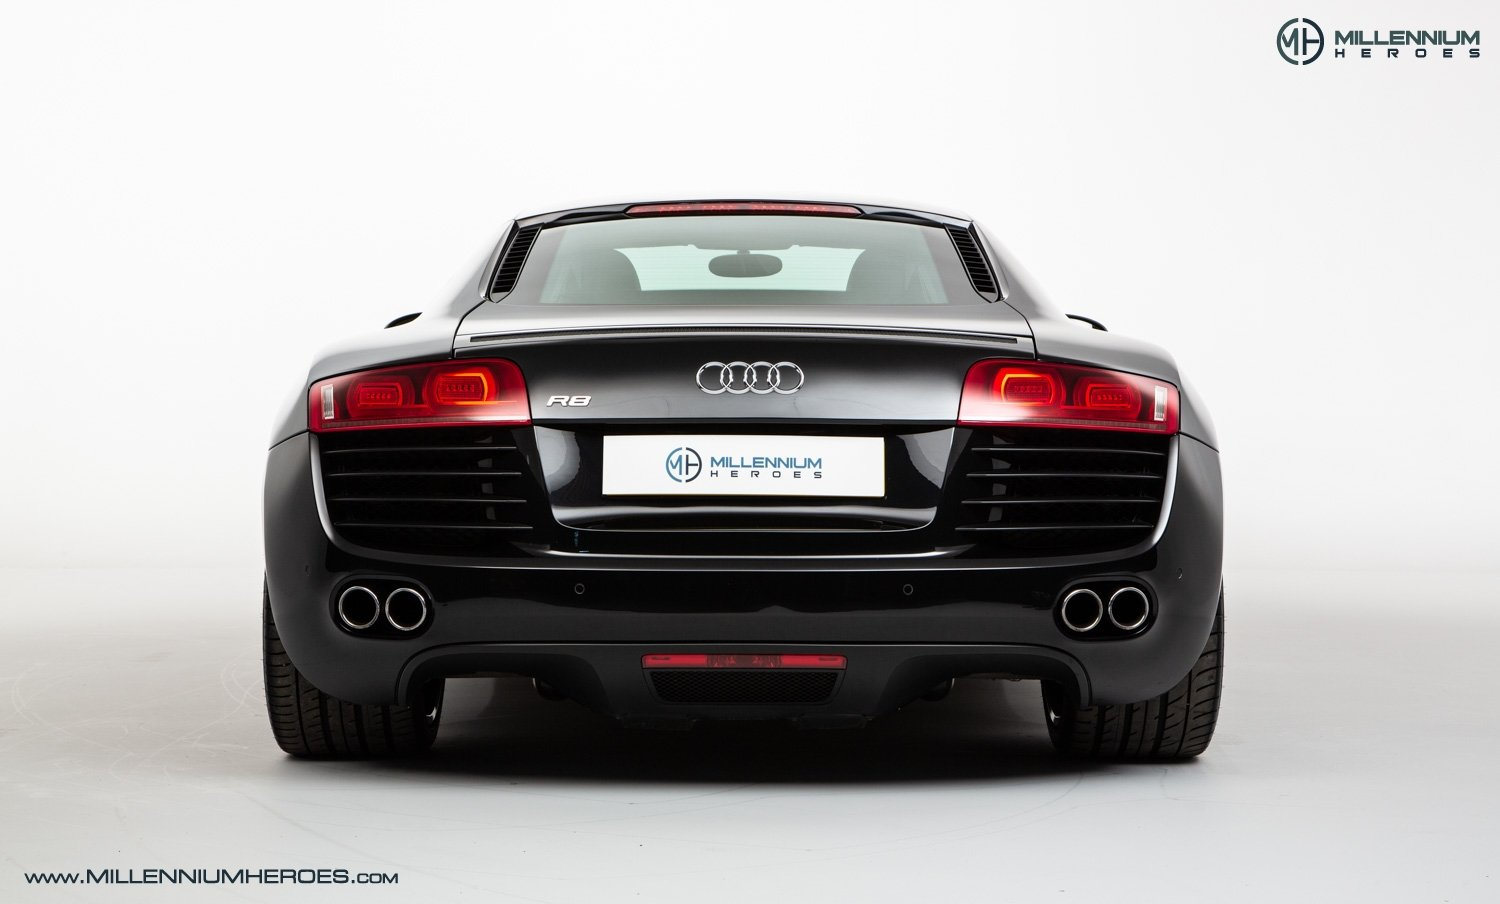 2008 AUDI R8 QUATTRO // 6 SPEED MANUAL // FULL AUDI SERVICE HISTO For Sale (picture 7 of 19)